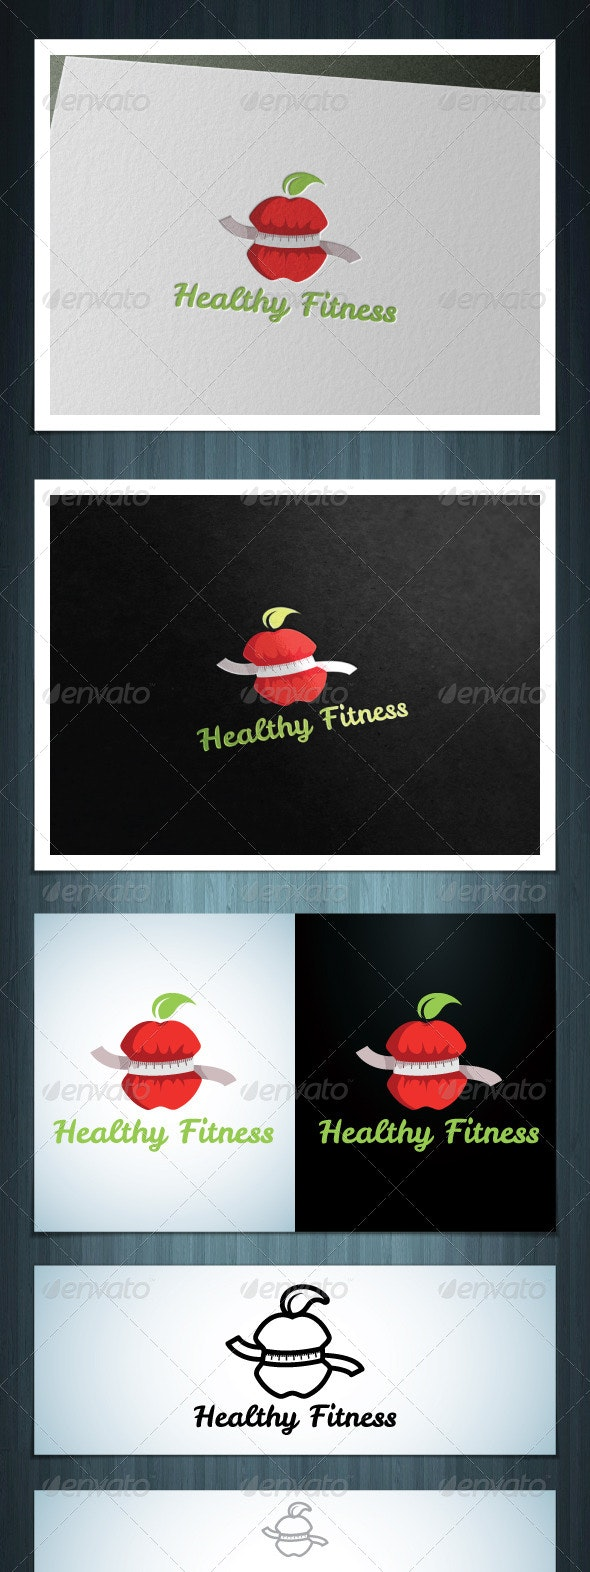 Healthy Fitness - Vector Abstract